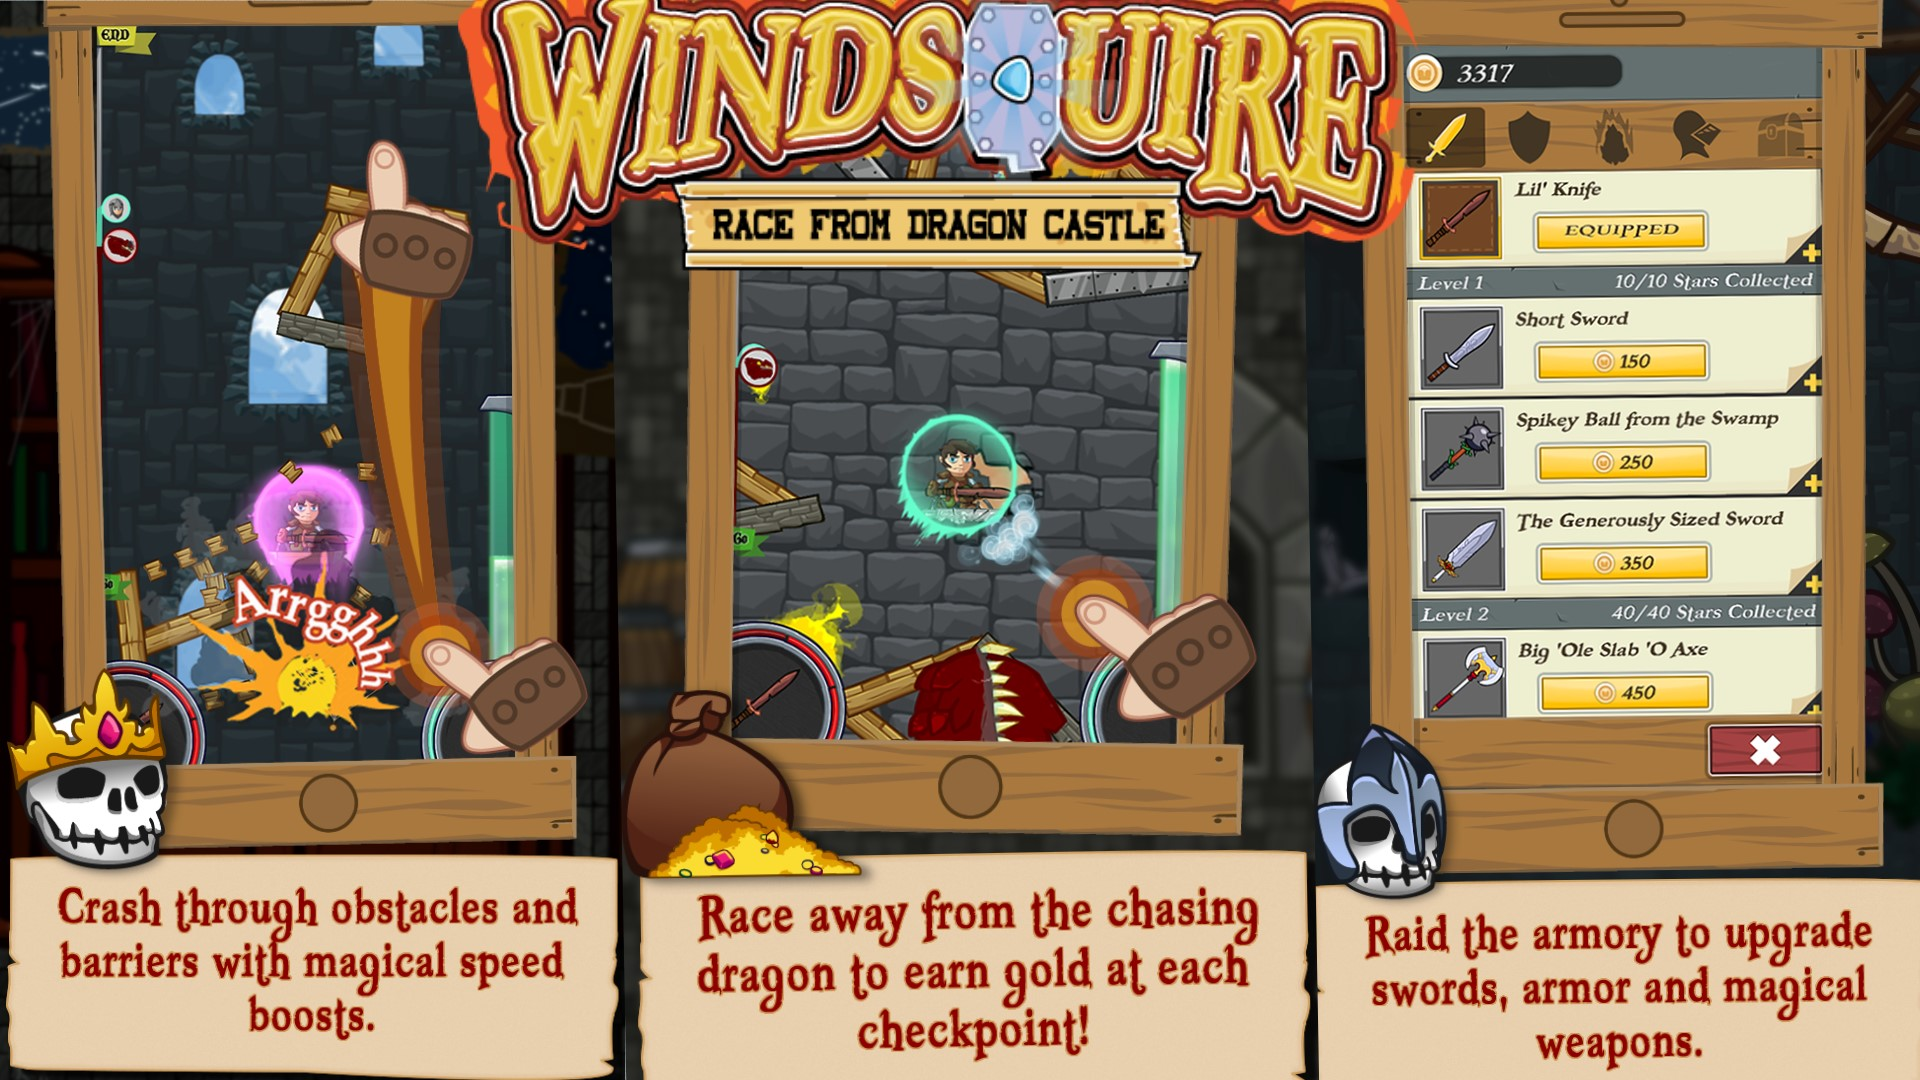 Windsquire beta